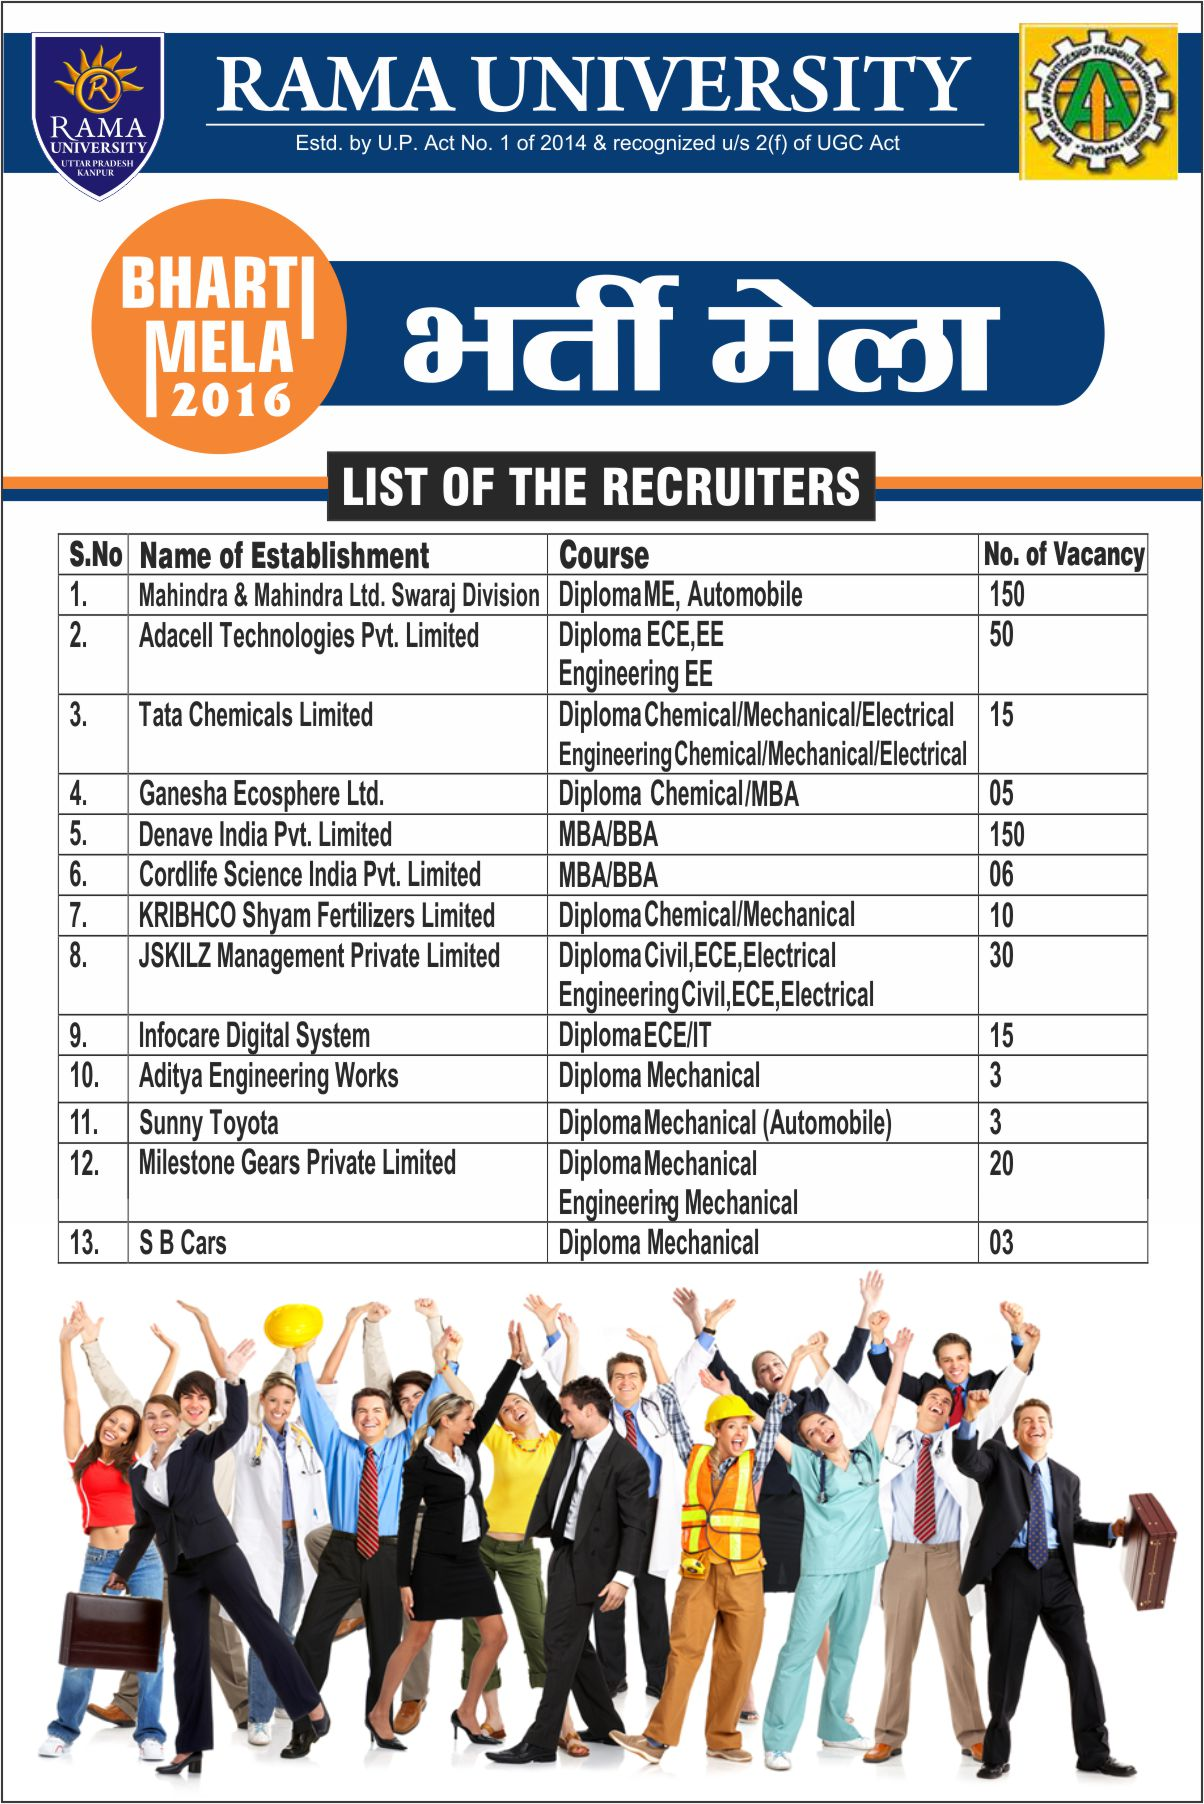 List of Recruiters